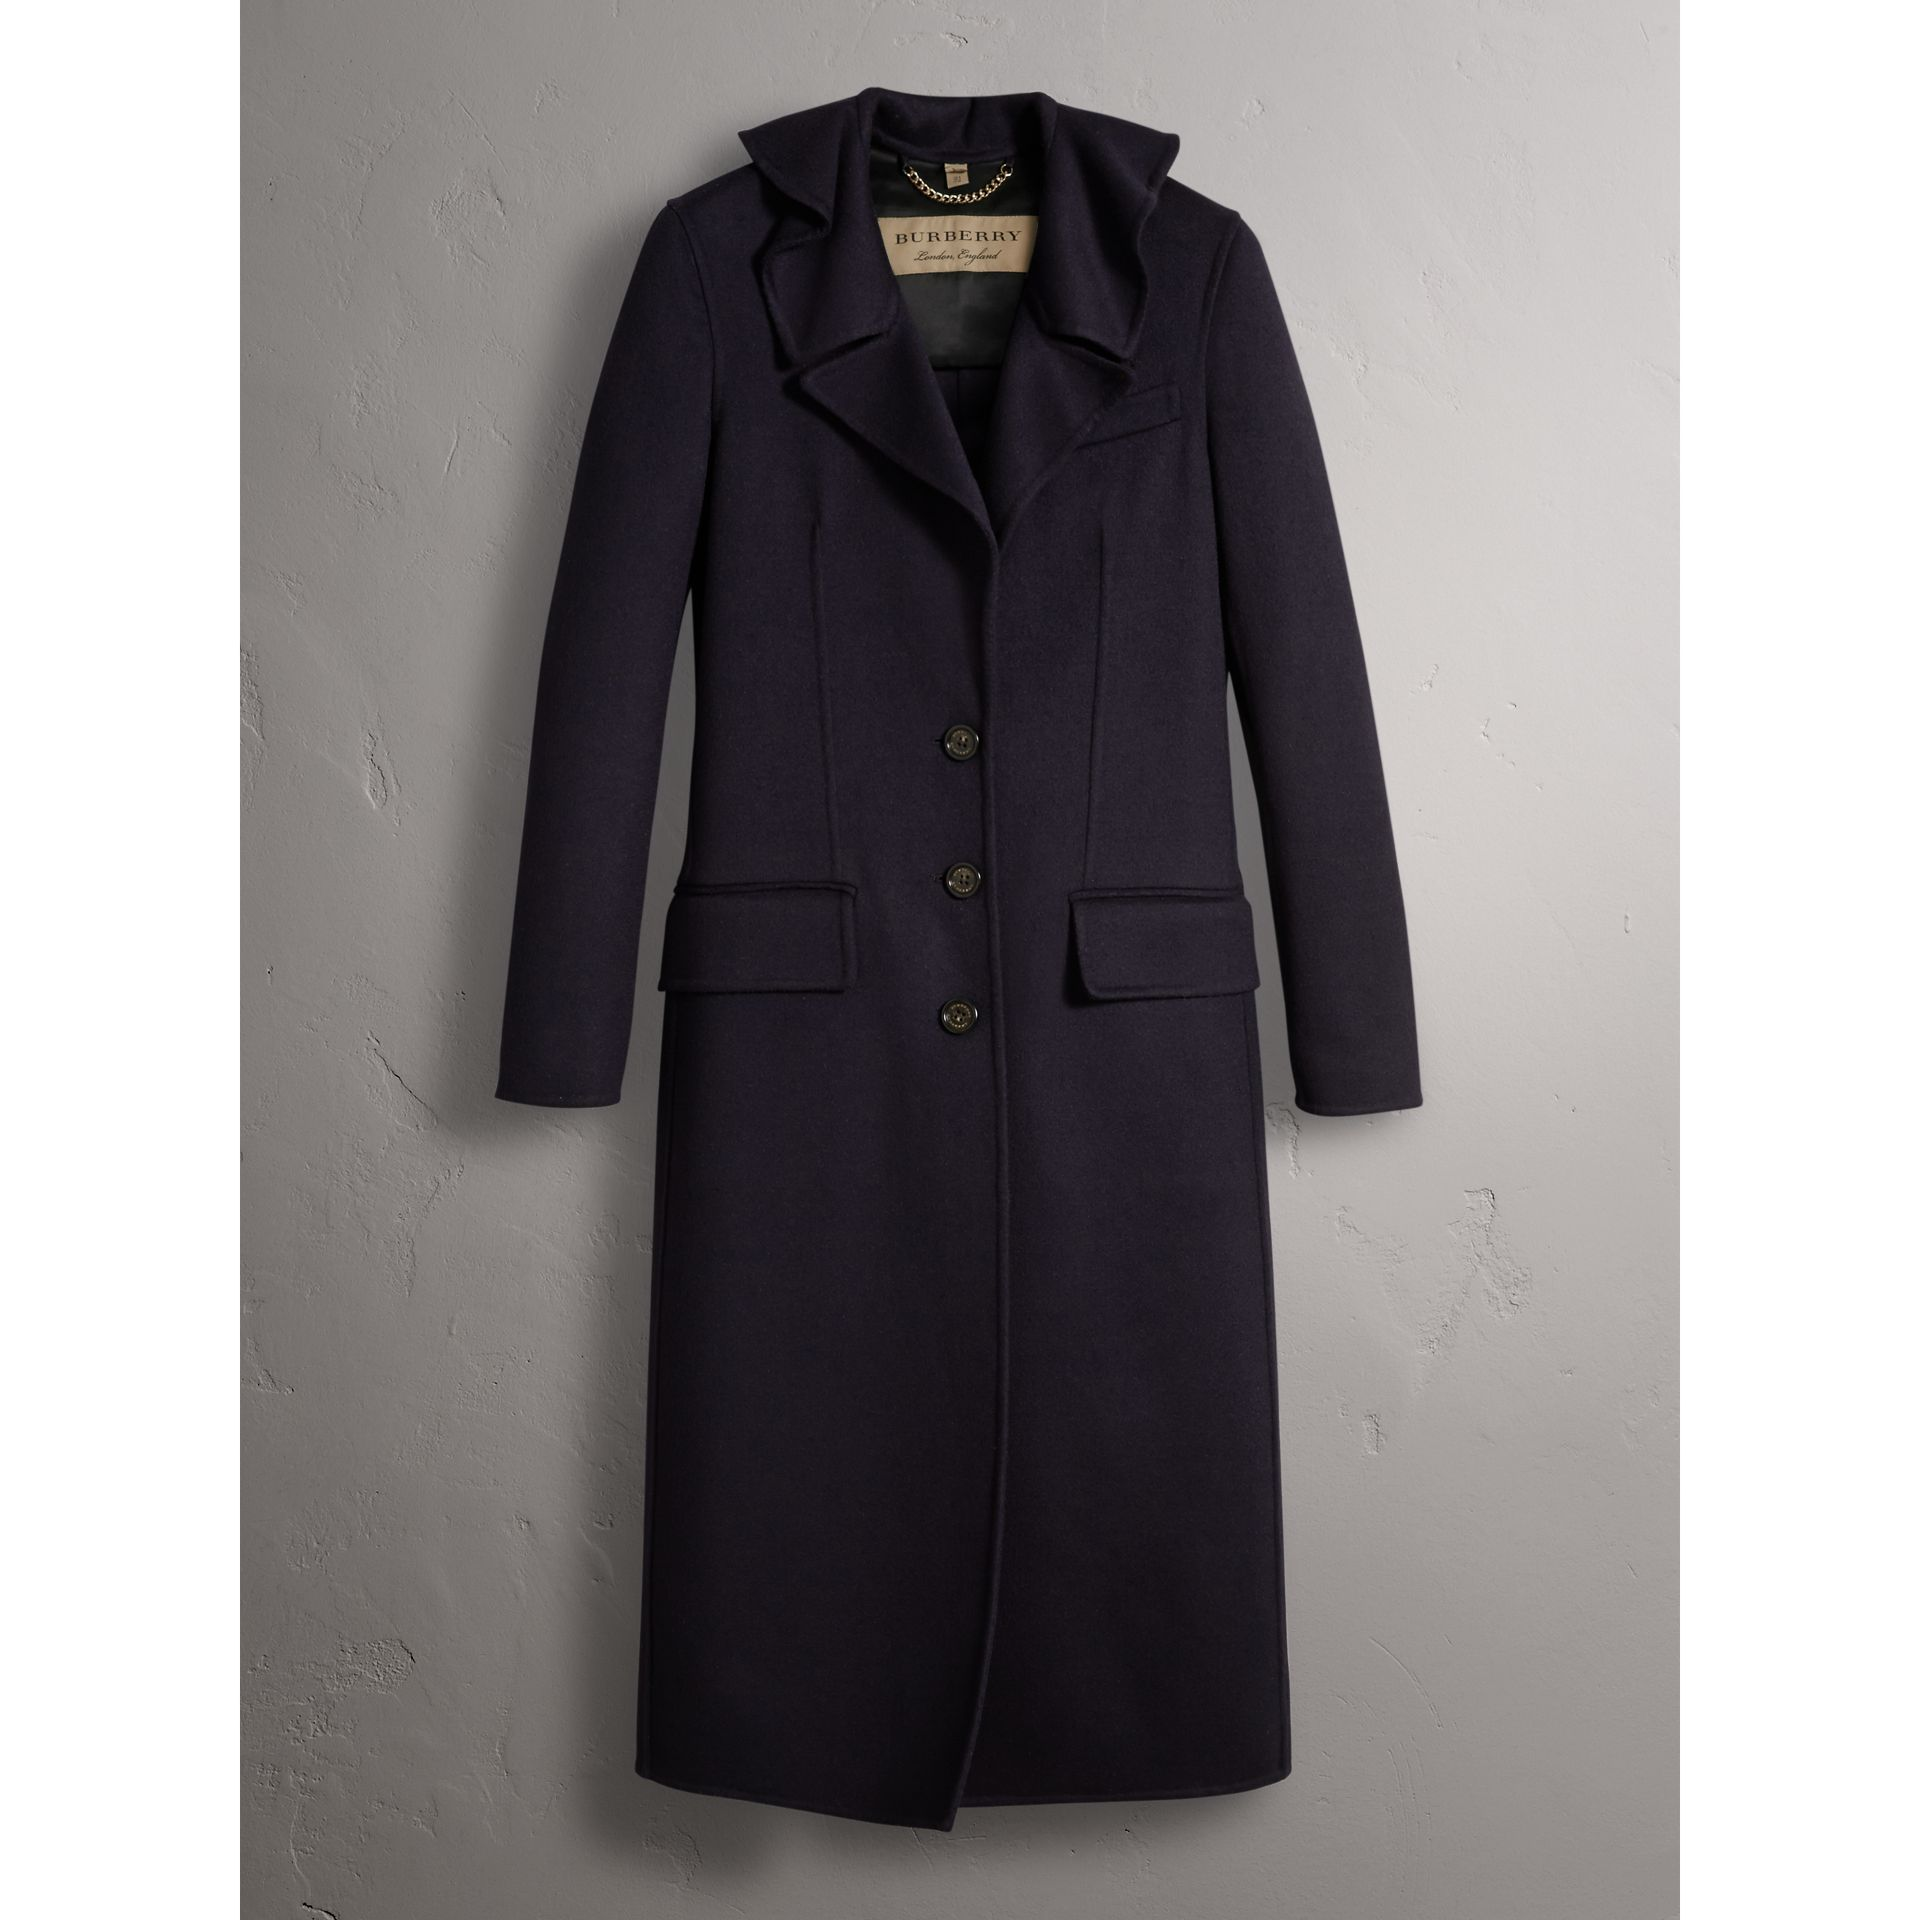 Ruffled Collar Wool Cashmere Coat in Navy - Women | Burberry Singapore - gallery image 4